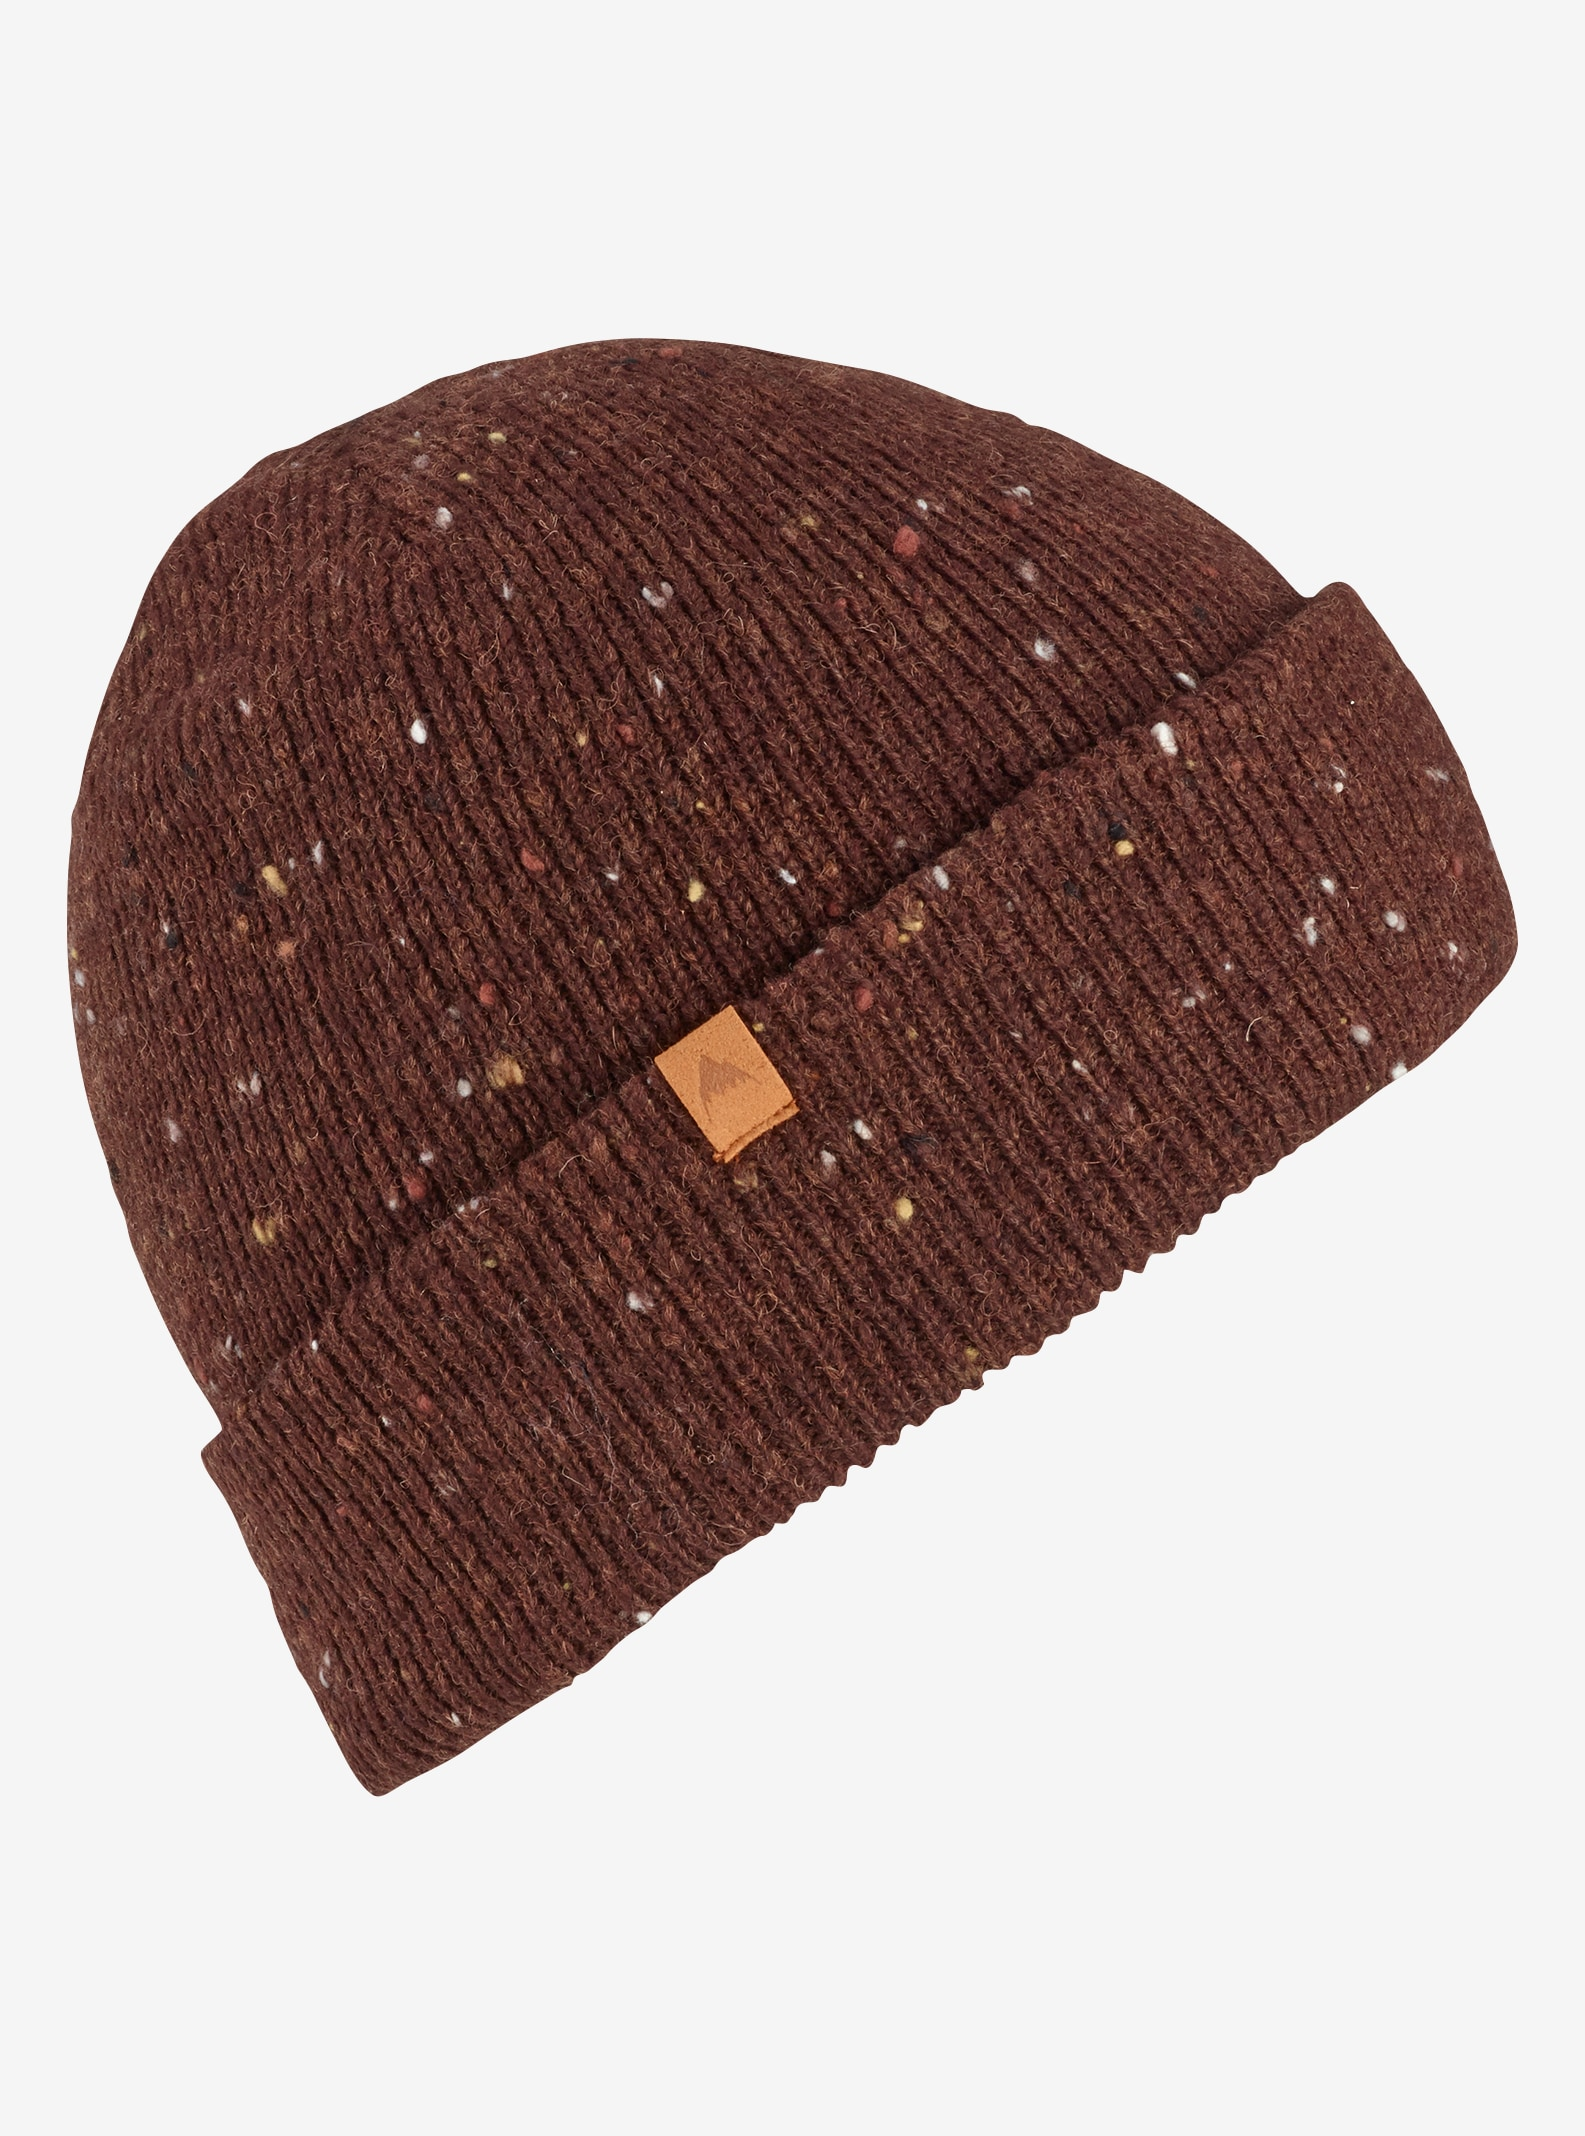 Burton Linden Beanie shown in Chestnut